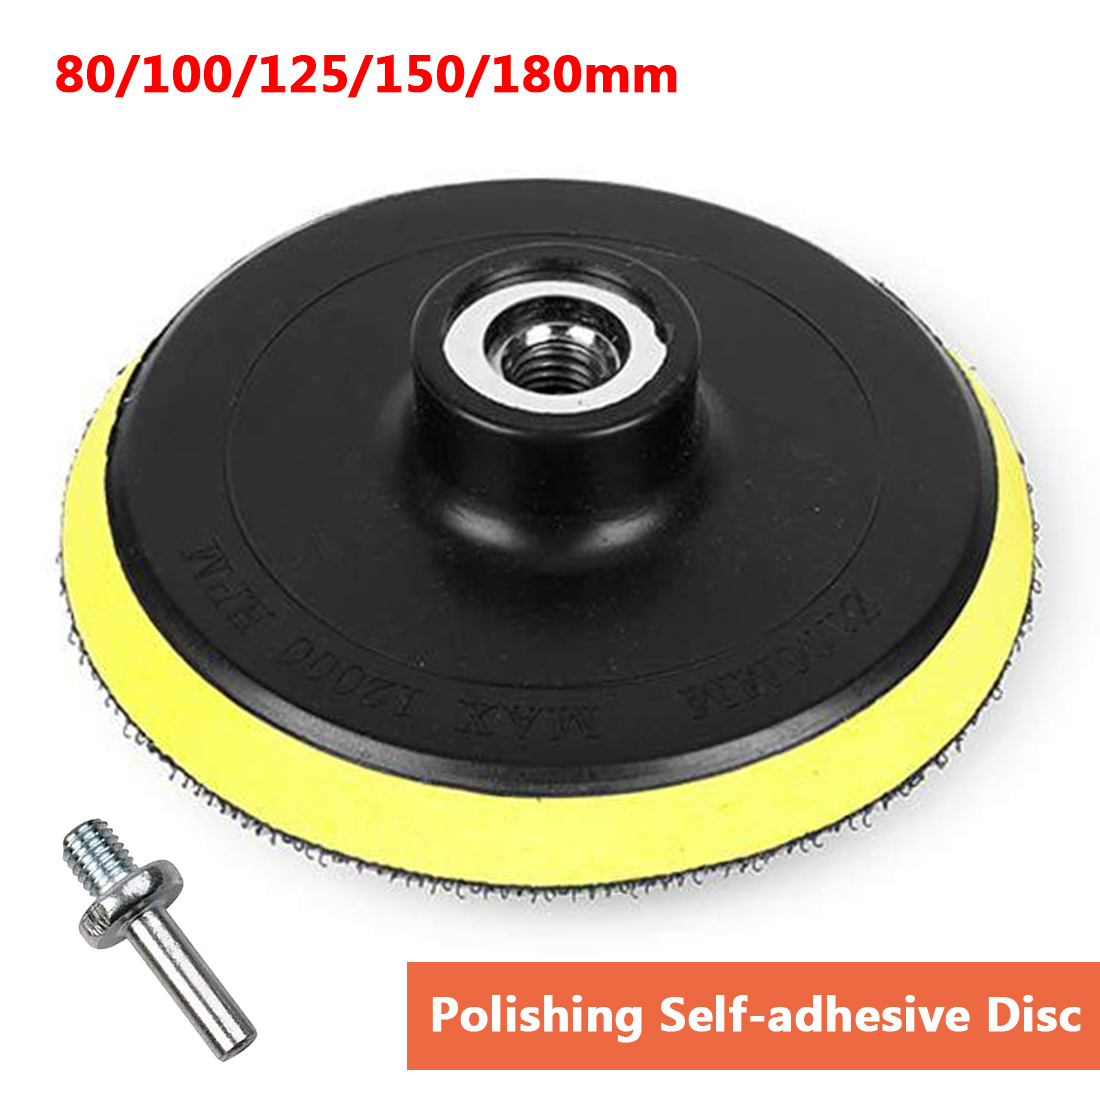 Abrasive Tools Dedicated Dremel 80-180mm Polishing Self-adhesive Disc Polishing Sandpaper Sheet Adhesive Disc Chuck Angle Grinder Sticky Plate For Car Quality And Quantity Assured